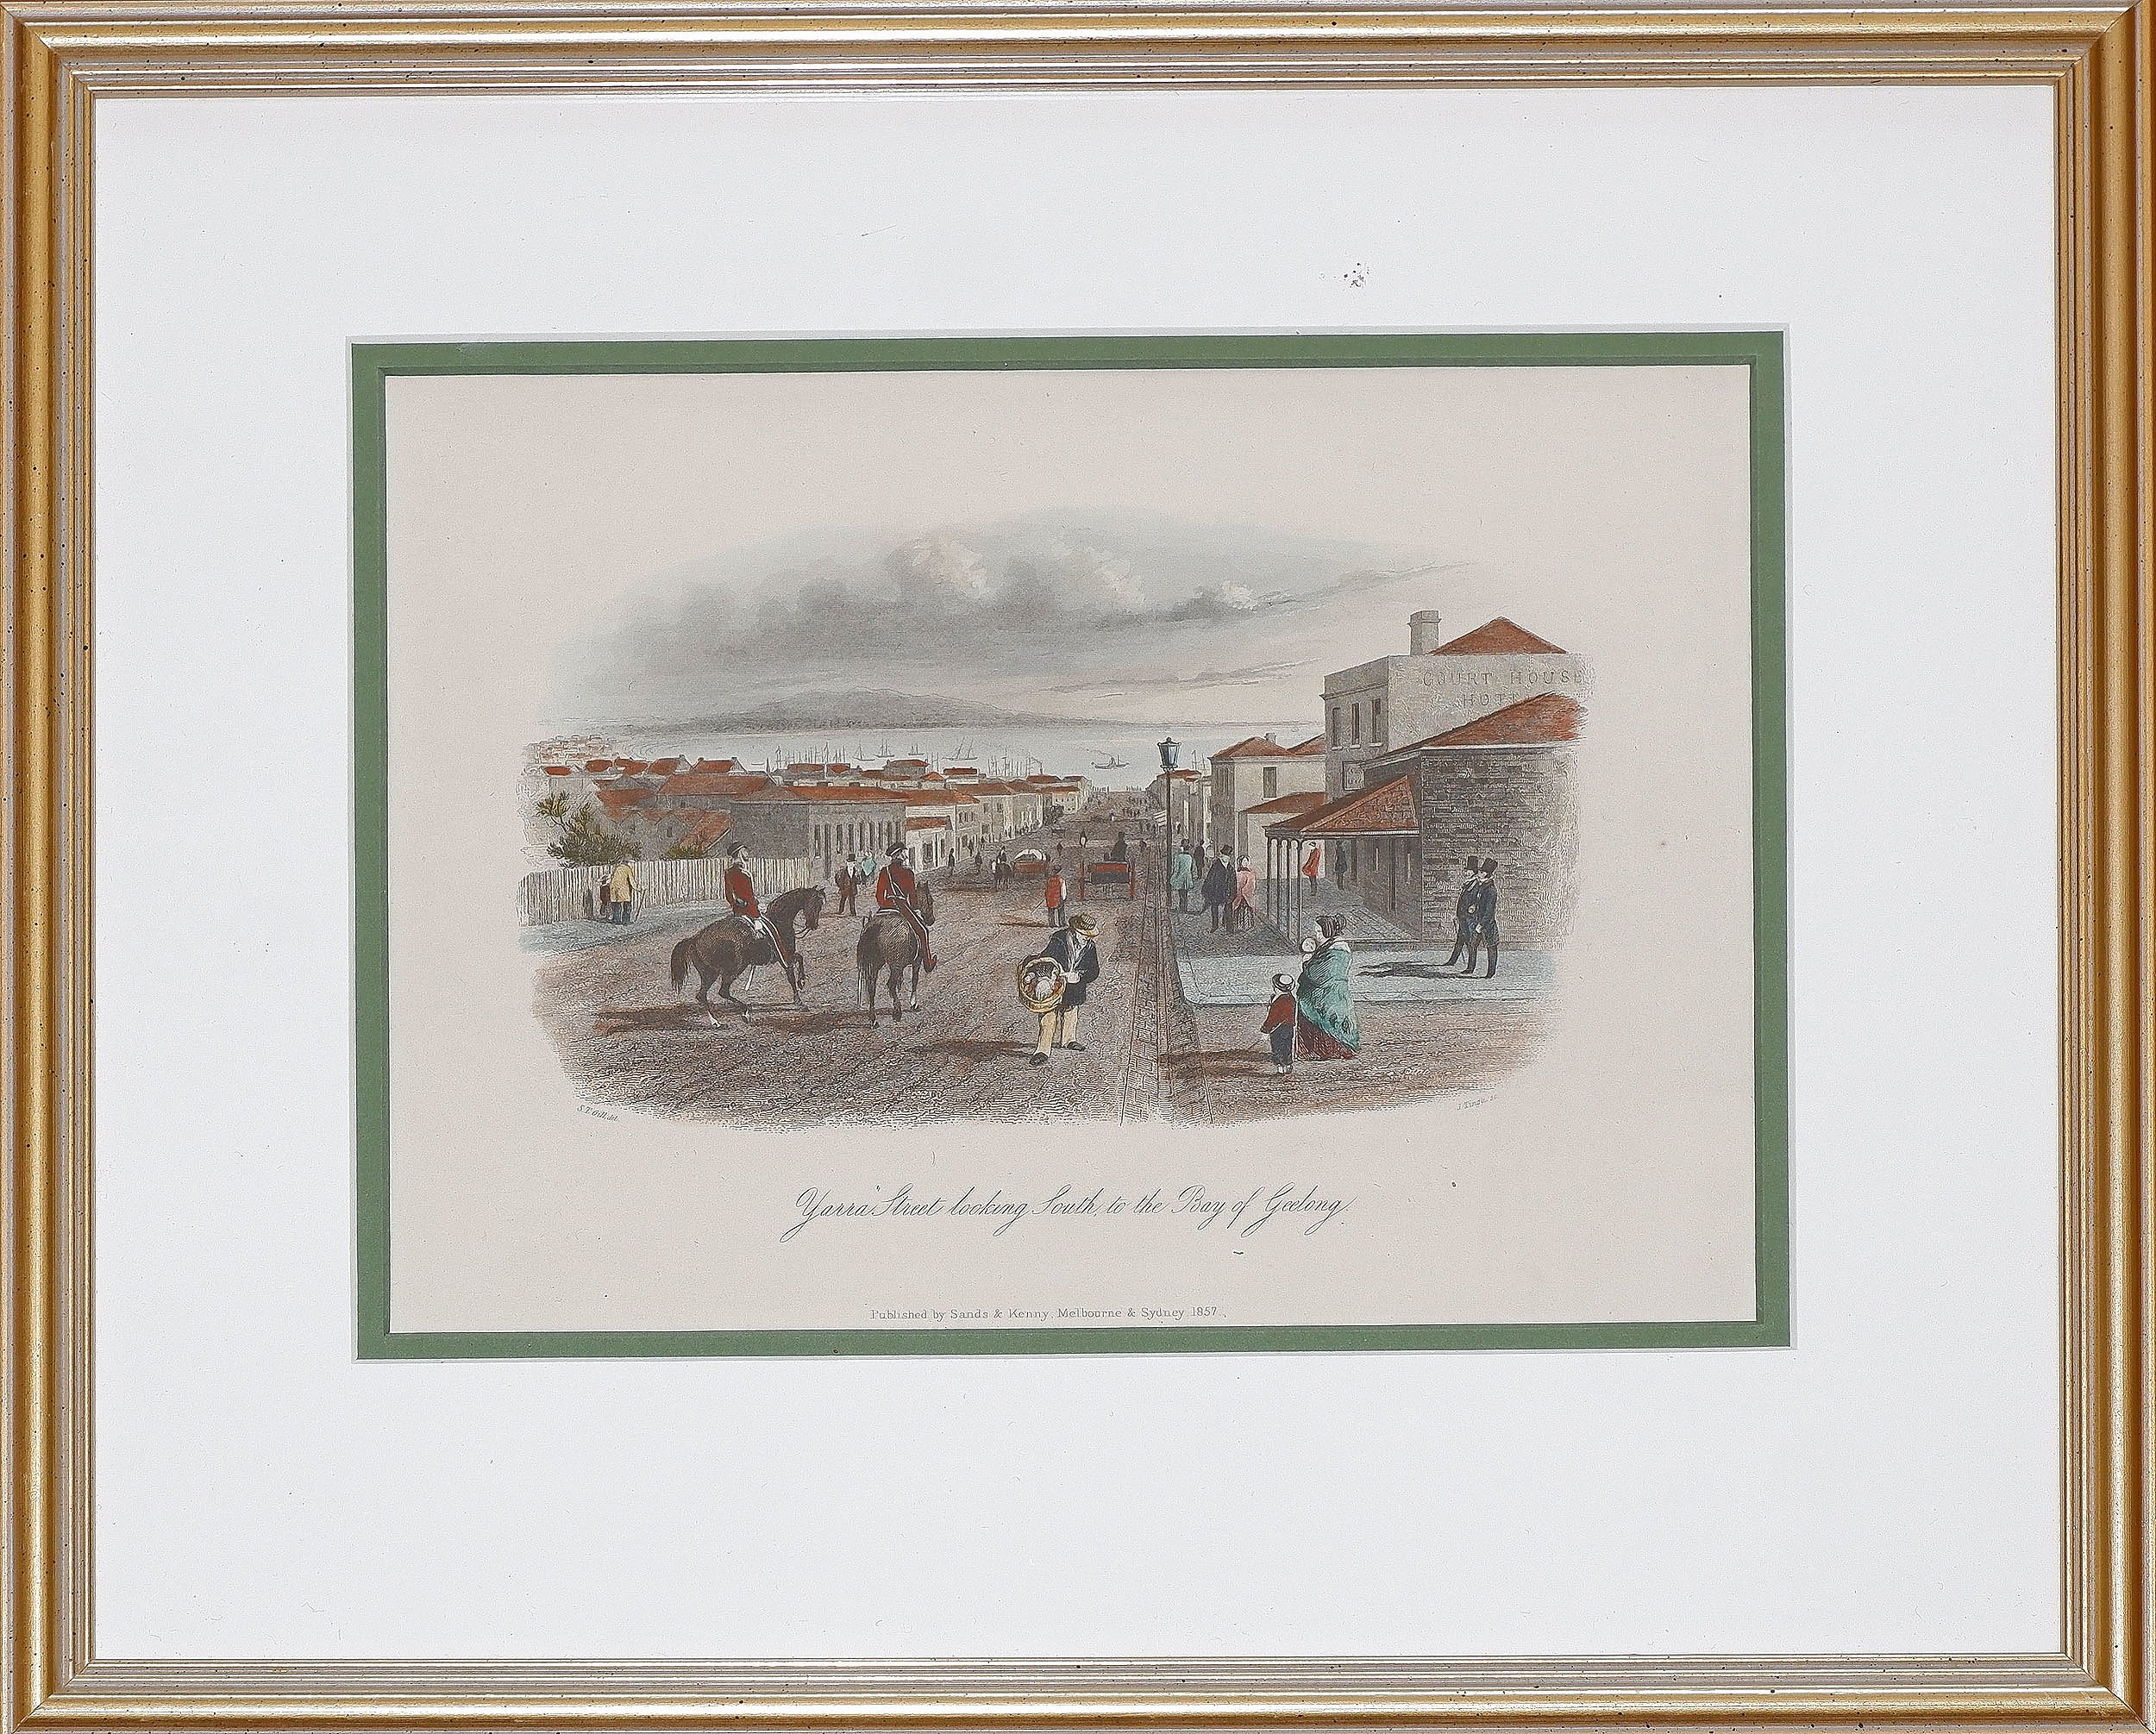 'S.T. Gill (1818-1880), Yarra Street Looking South to the Bay of Geelong, Hand-Coloured Engraving'